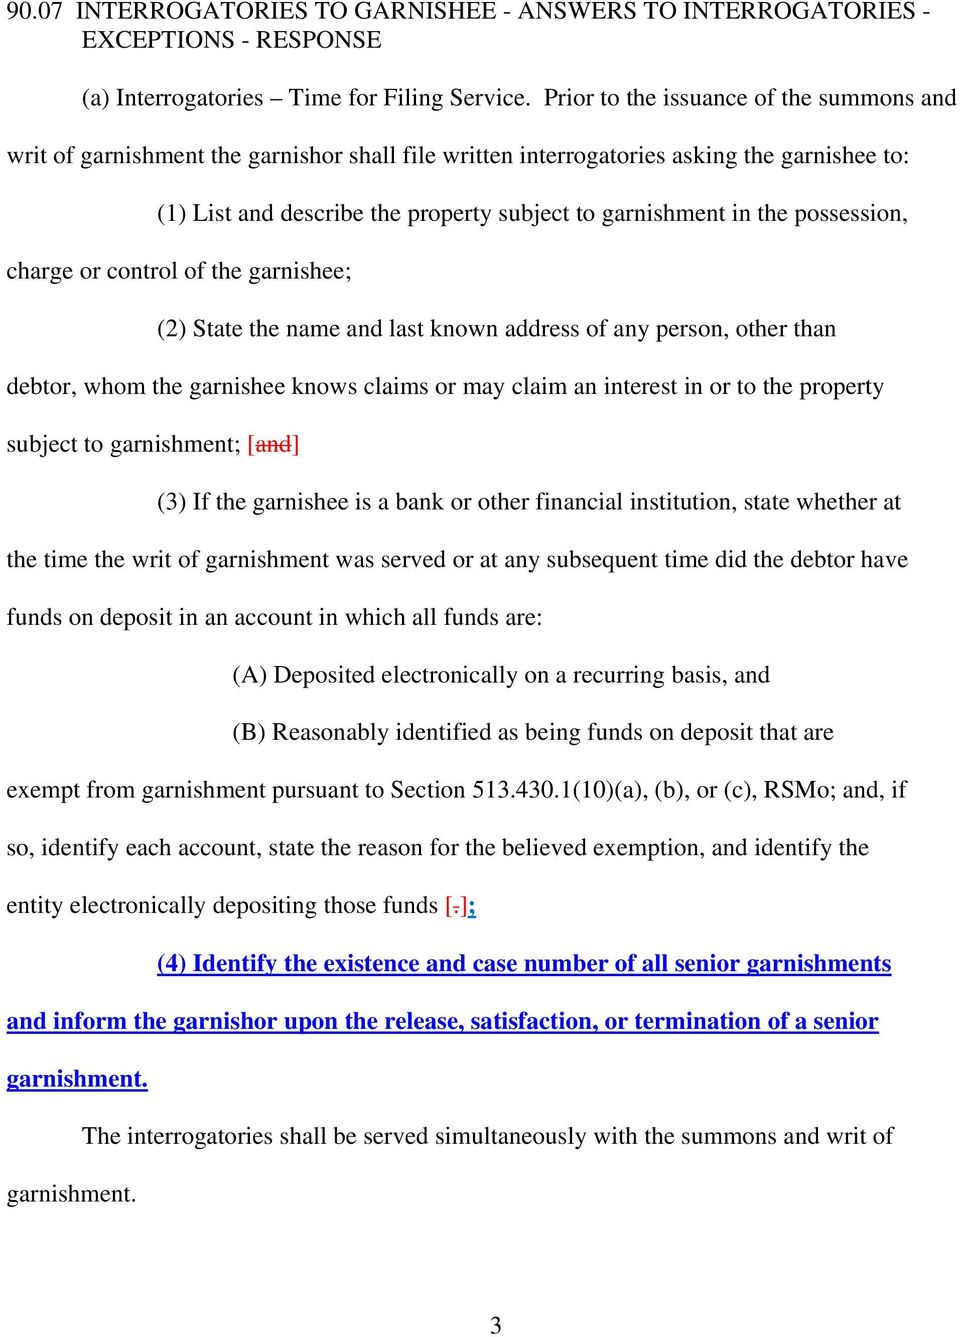 possession, charge or control of the garnishee; (2) State the name and last known address of any person, other than debtor, whom the garnishee knows claims or may claim an interest in or to the